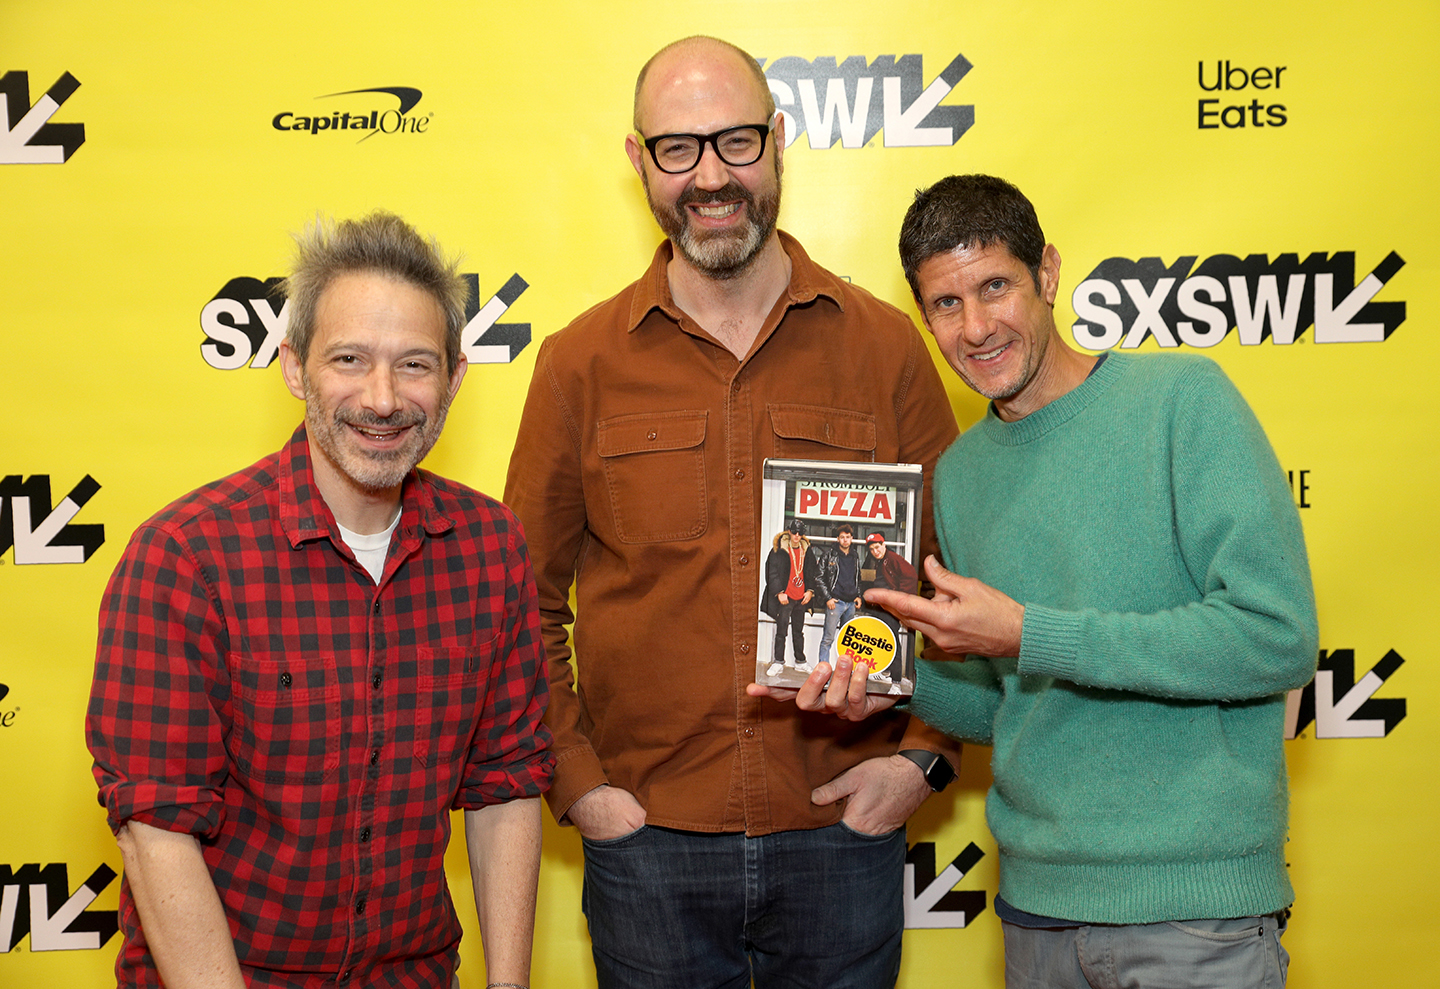 (L-R) Adam Horovitz, Nathan Brackett, and Michael Diamond at their Music Keynote – Photo by Mike Jordan/Getty Images for SXSW